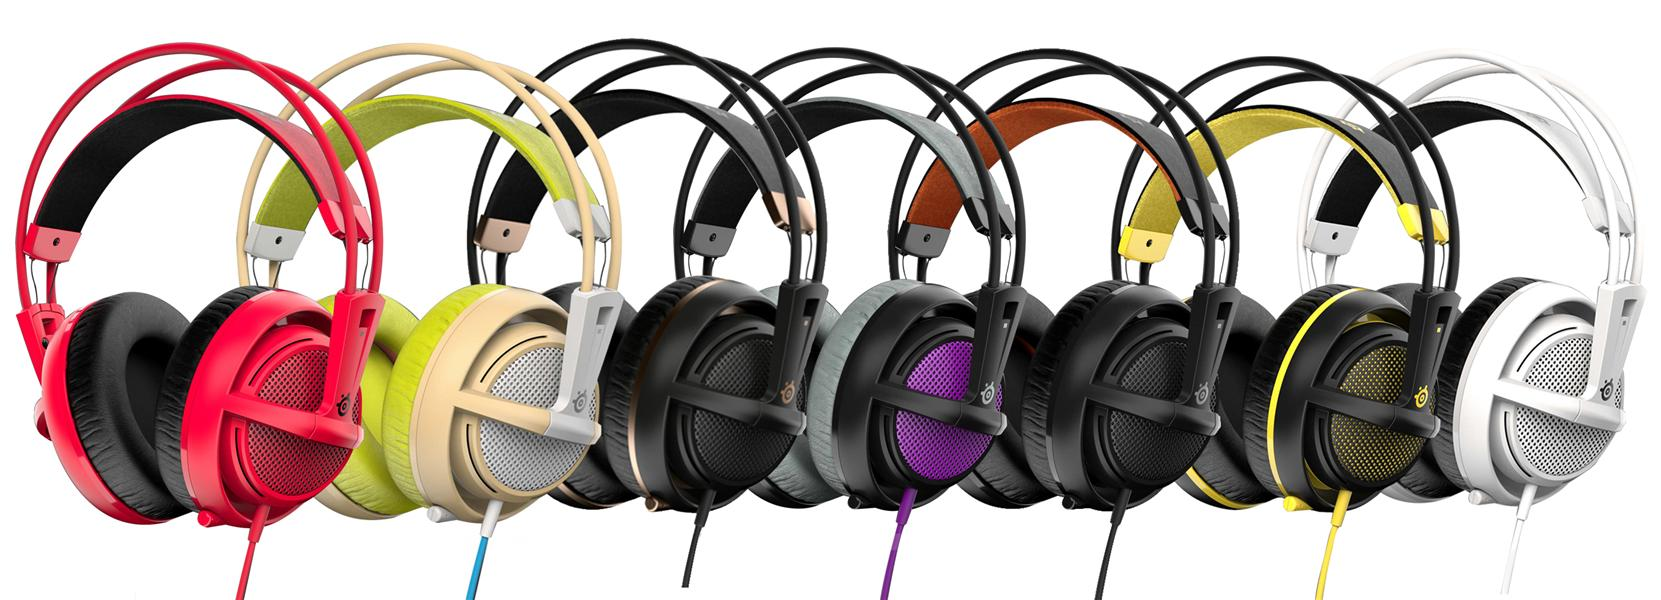 ce8e1711265 STEELSERIES WIRED SIBERIA 200 HEADS (end 3/18/2017 12:00 AM)